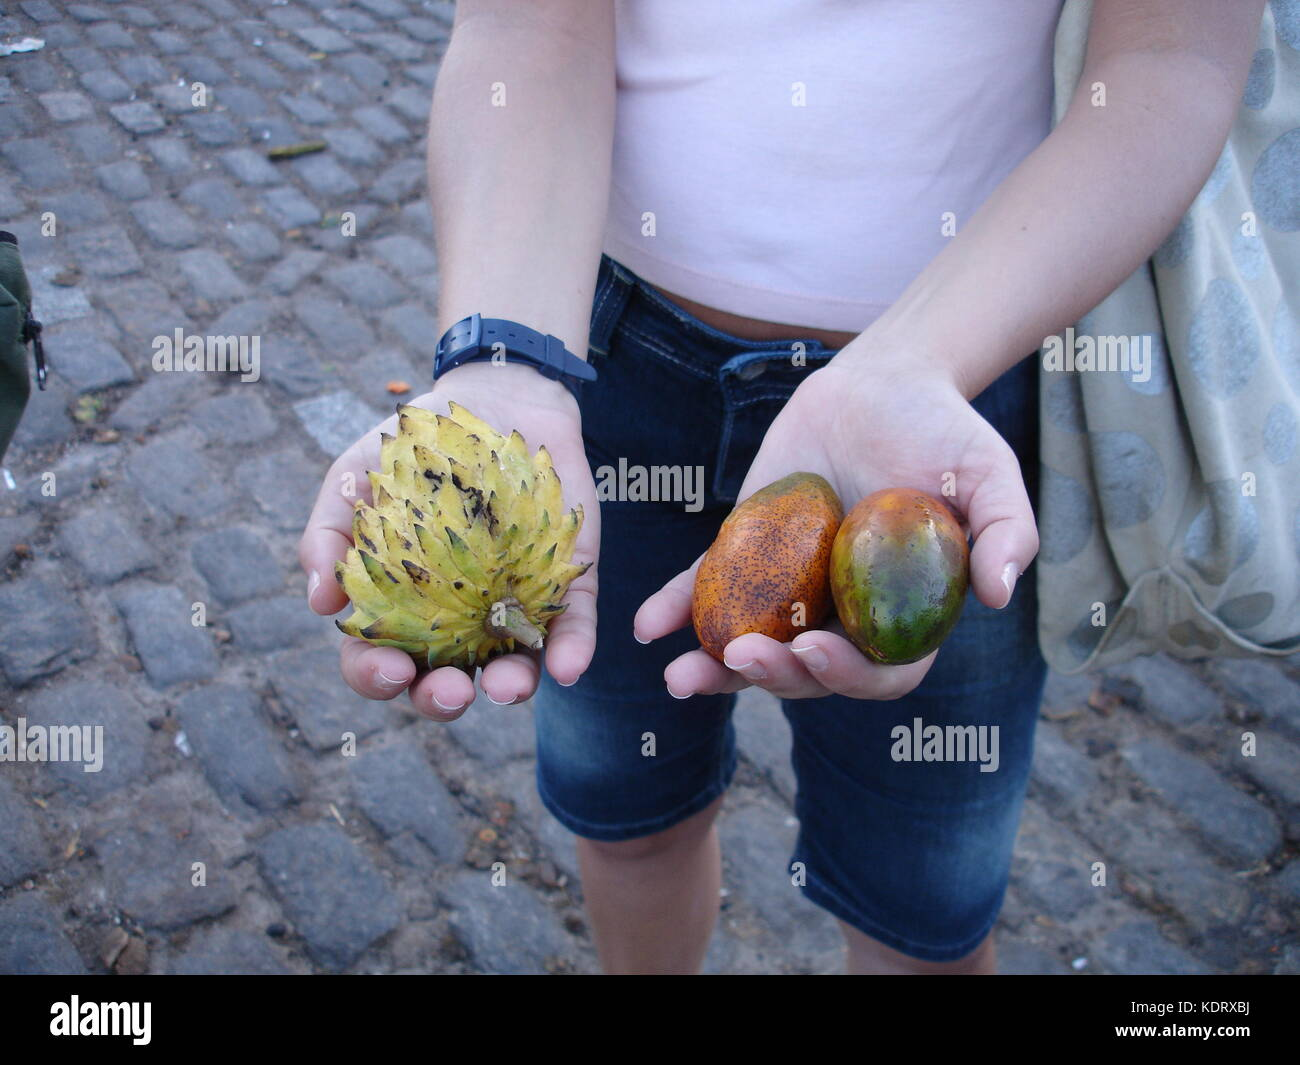 Woman holding three exotic fruits in her hands at ver o peso market in Belem, Brazil - Stock Image